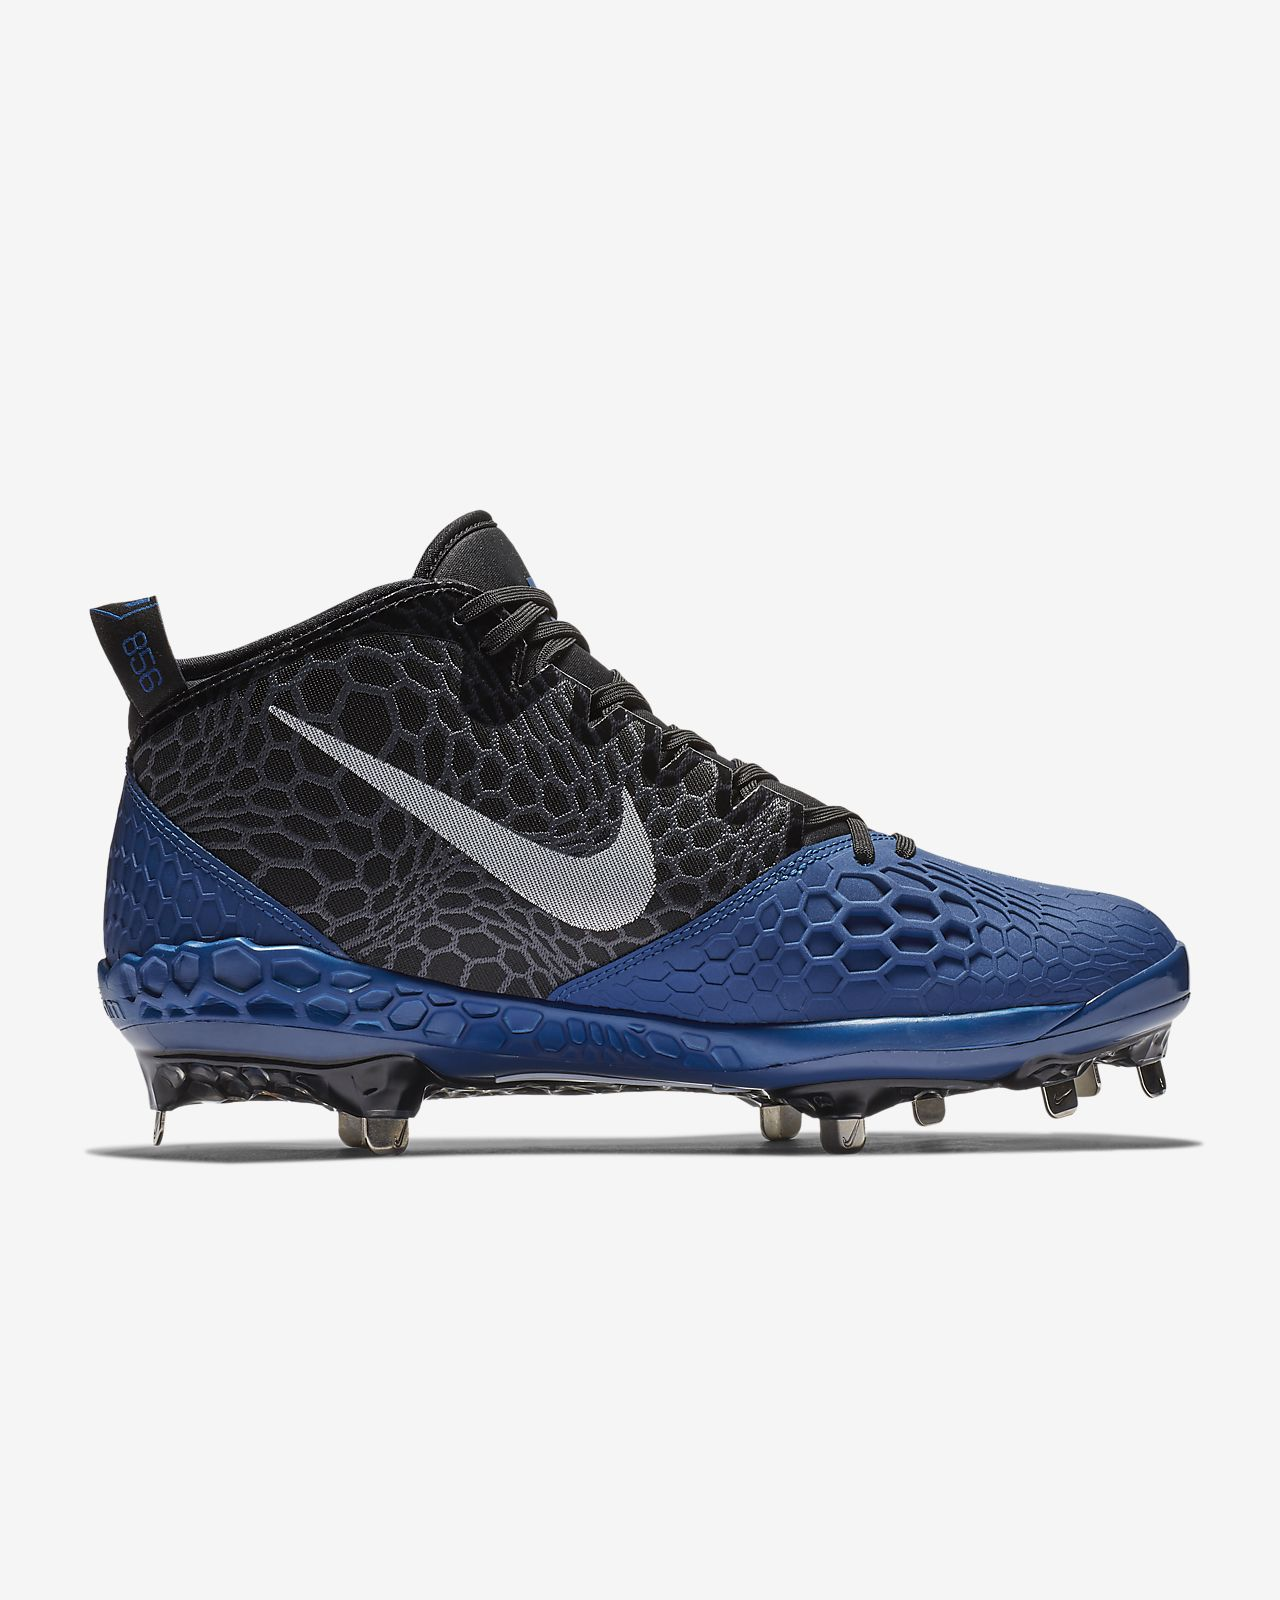 Men's Nike Force Zoom Trout 4 Mens Baseball Cleats Black White Metal Spikes Sz 11.5 Clothing, Shoes & Accessories